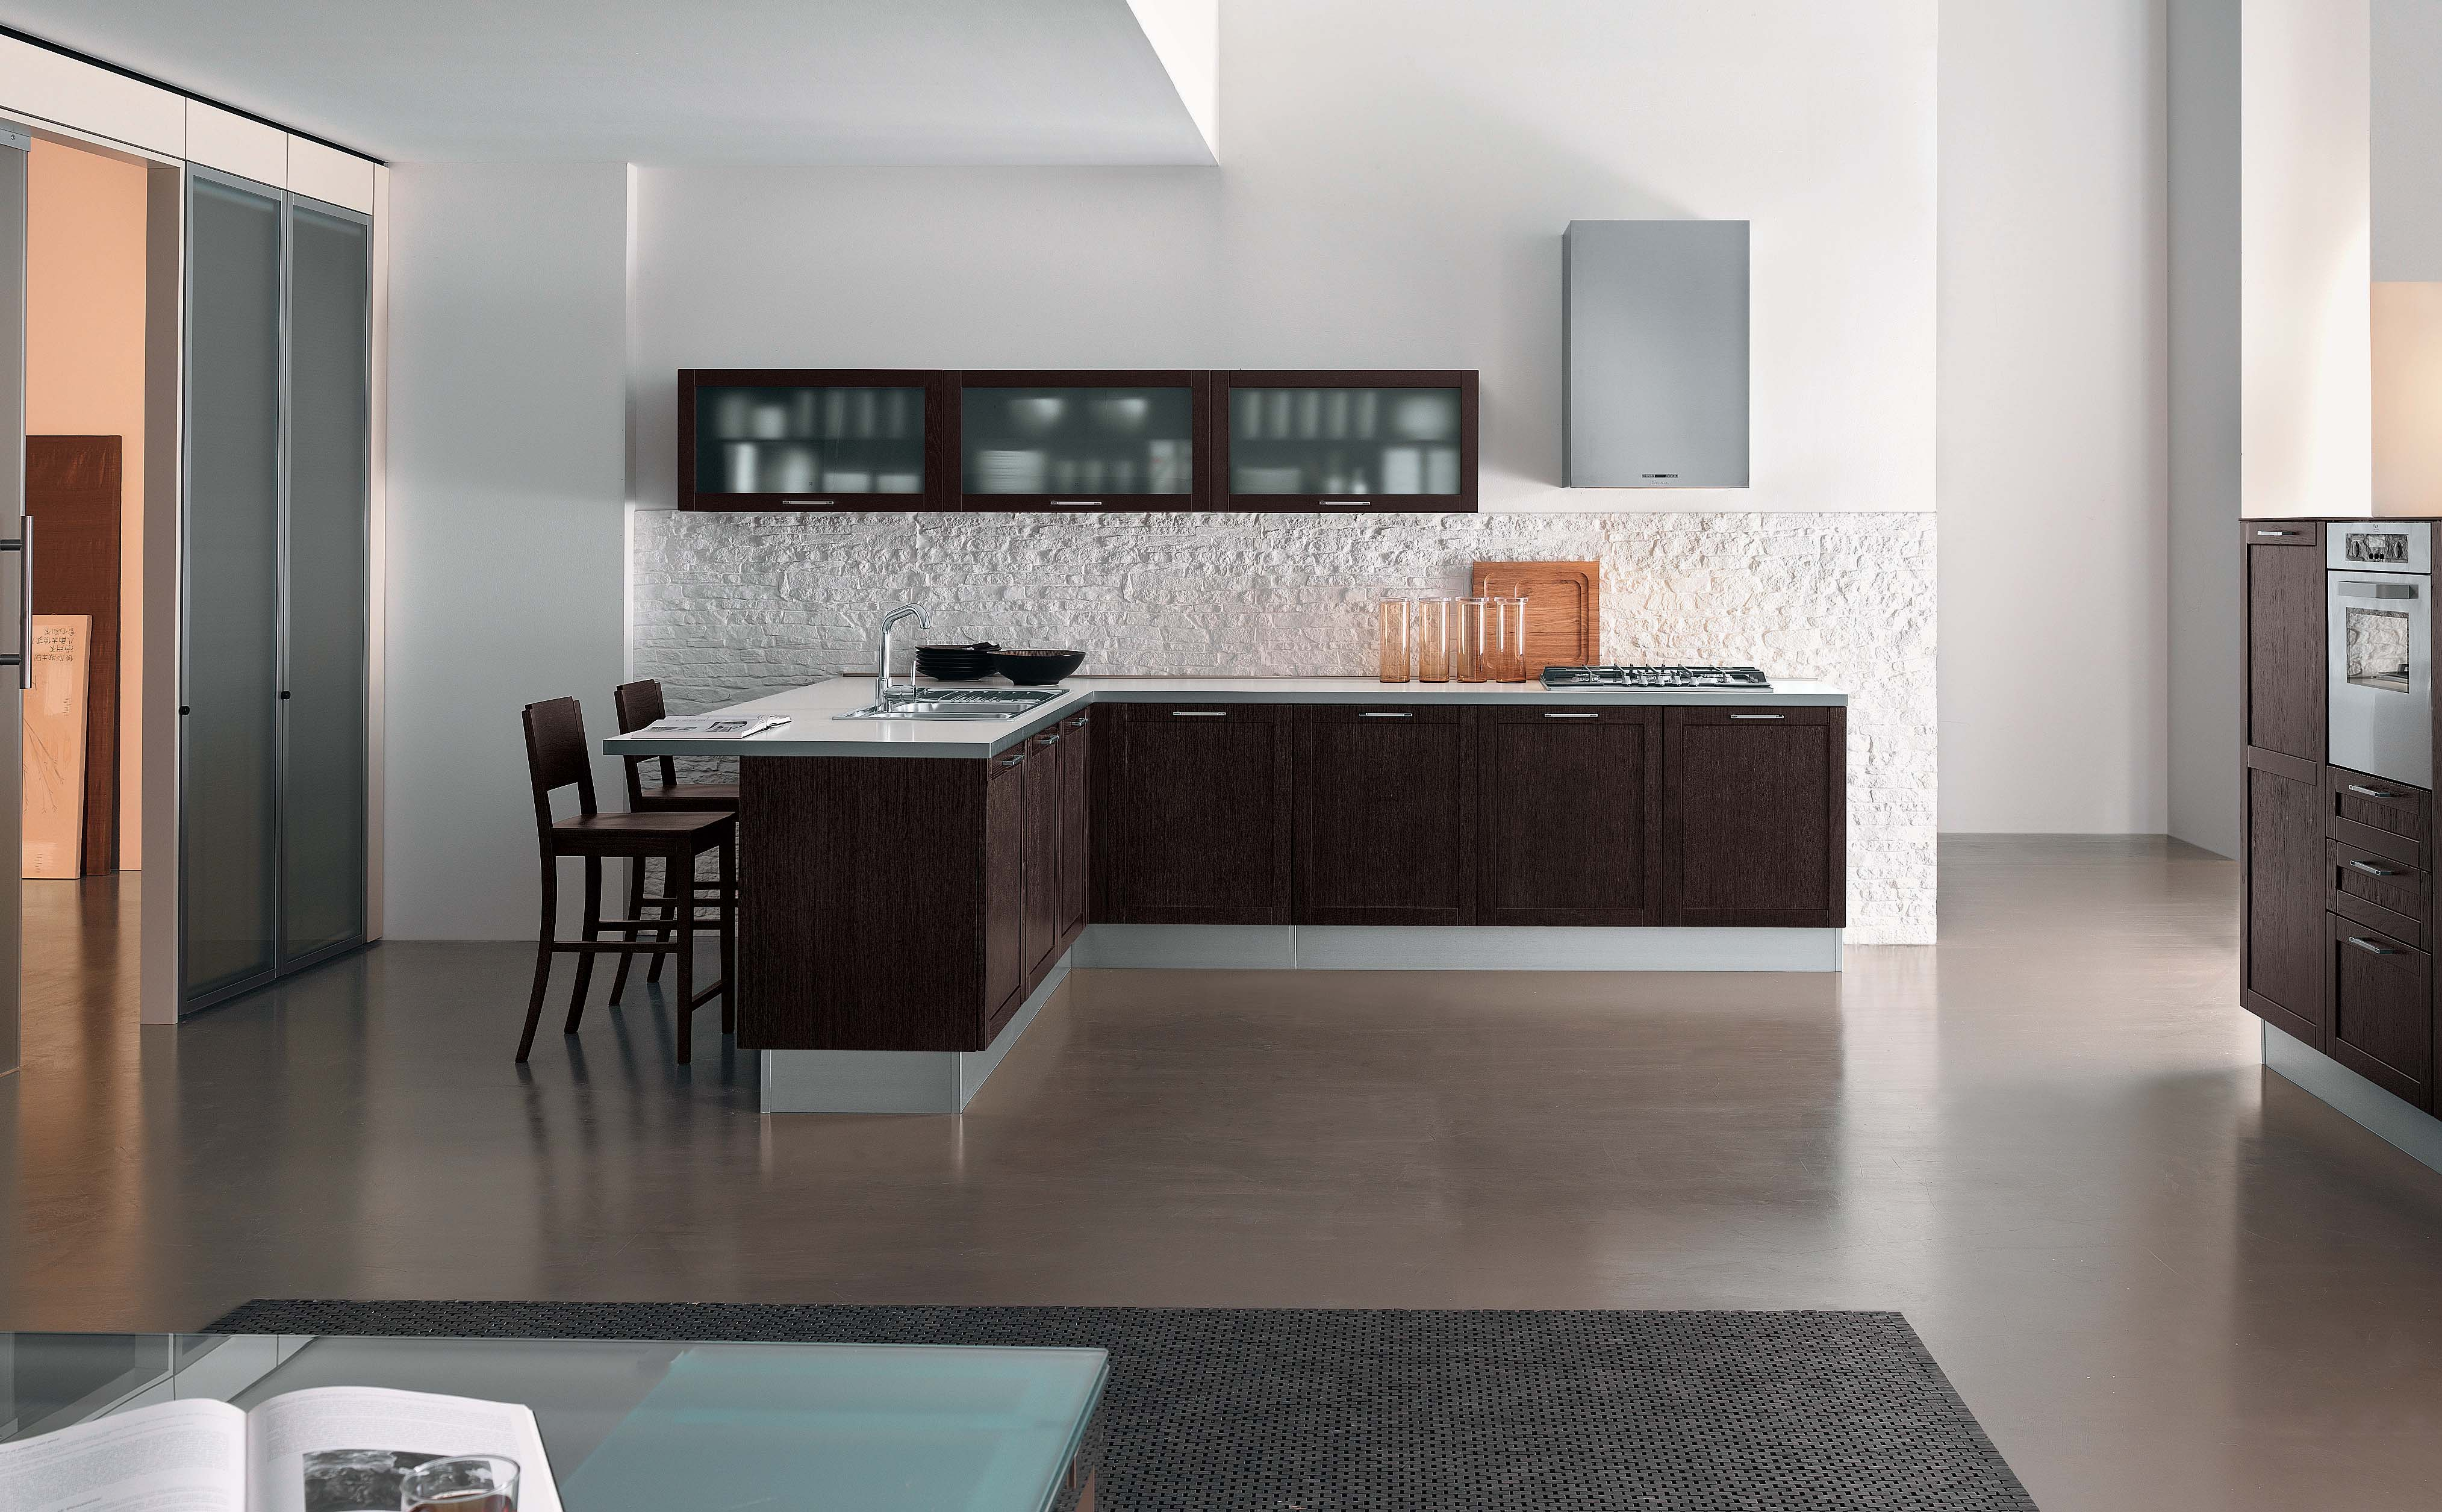 Great Modern Kitchen Interior Design 4055 x 2511 · 853 kB · jpeg